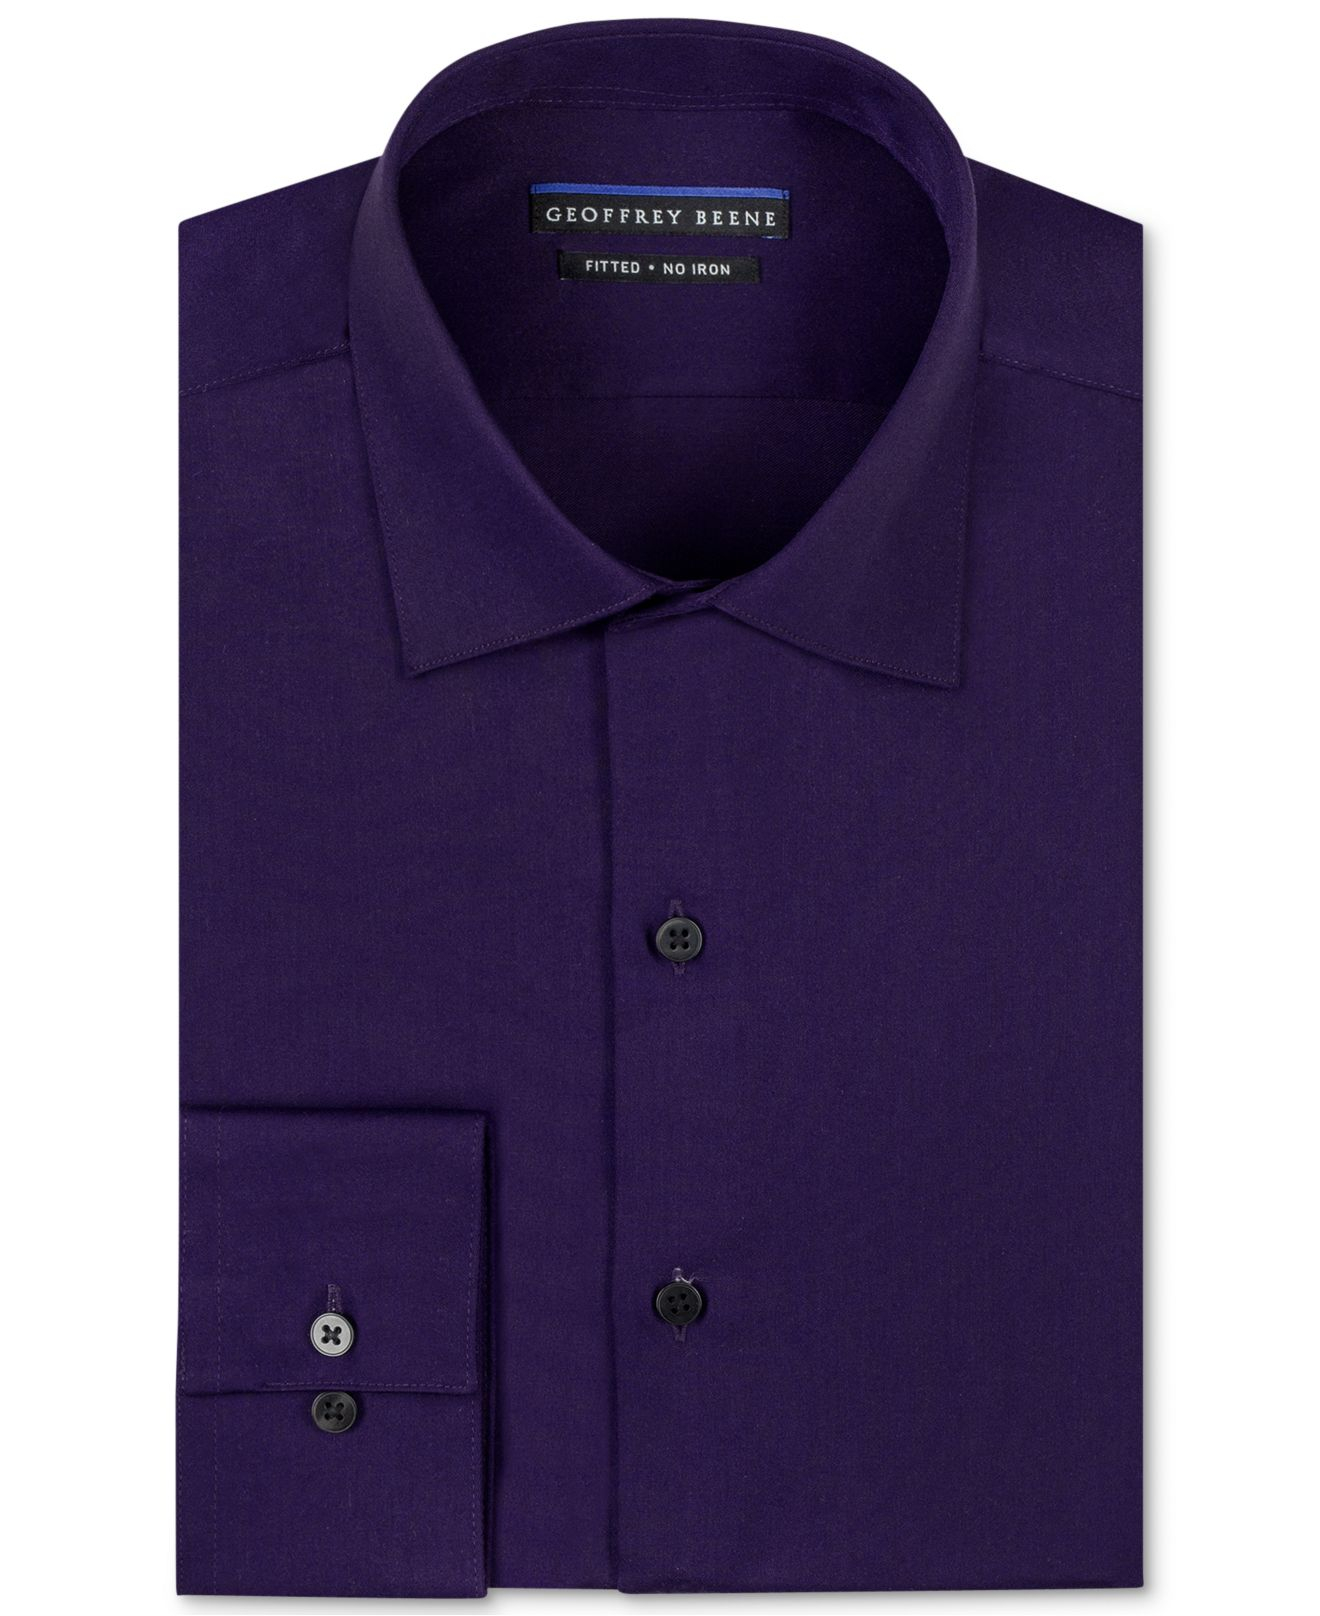 Geoffrey beene non iron fitted stretch sateen solid dress for How to stretch a dress shirt